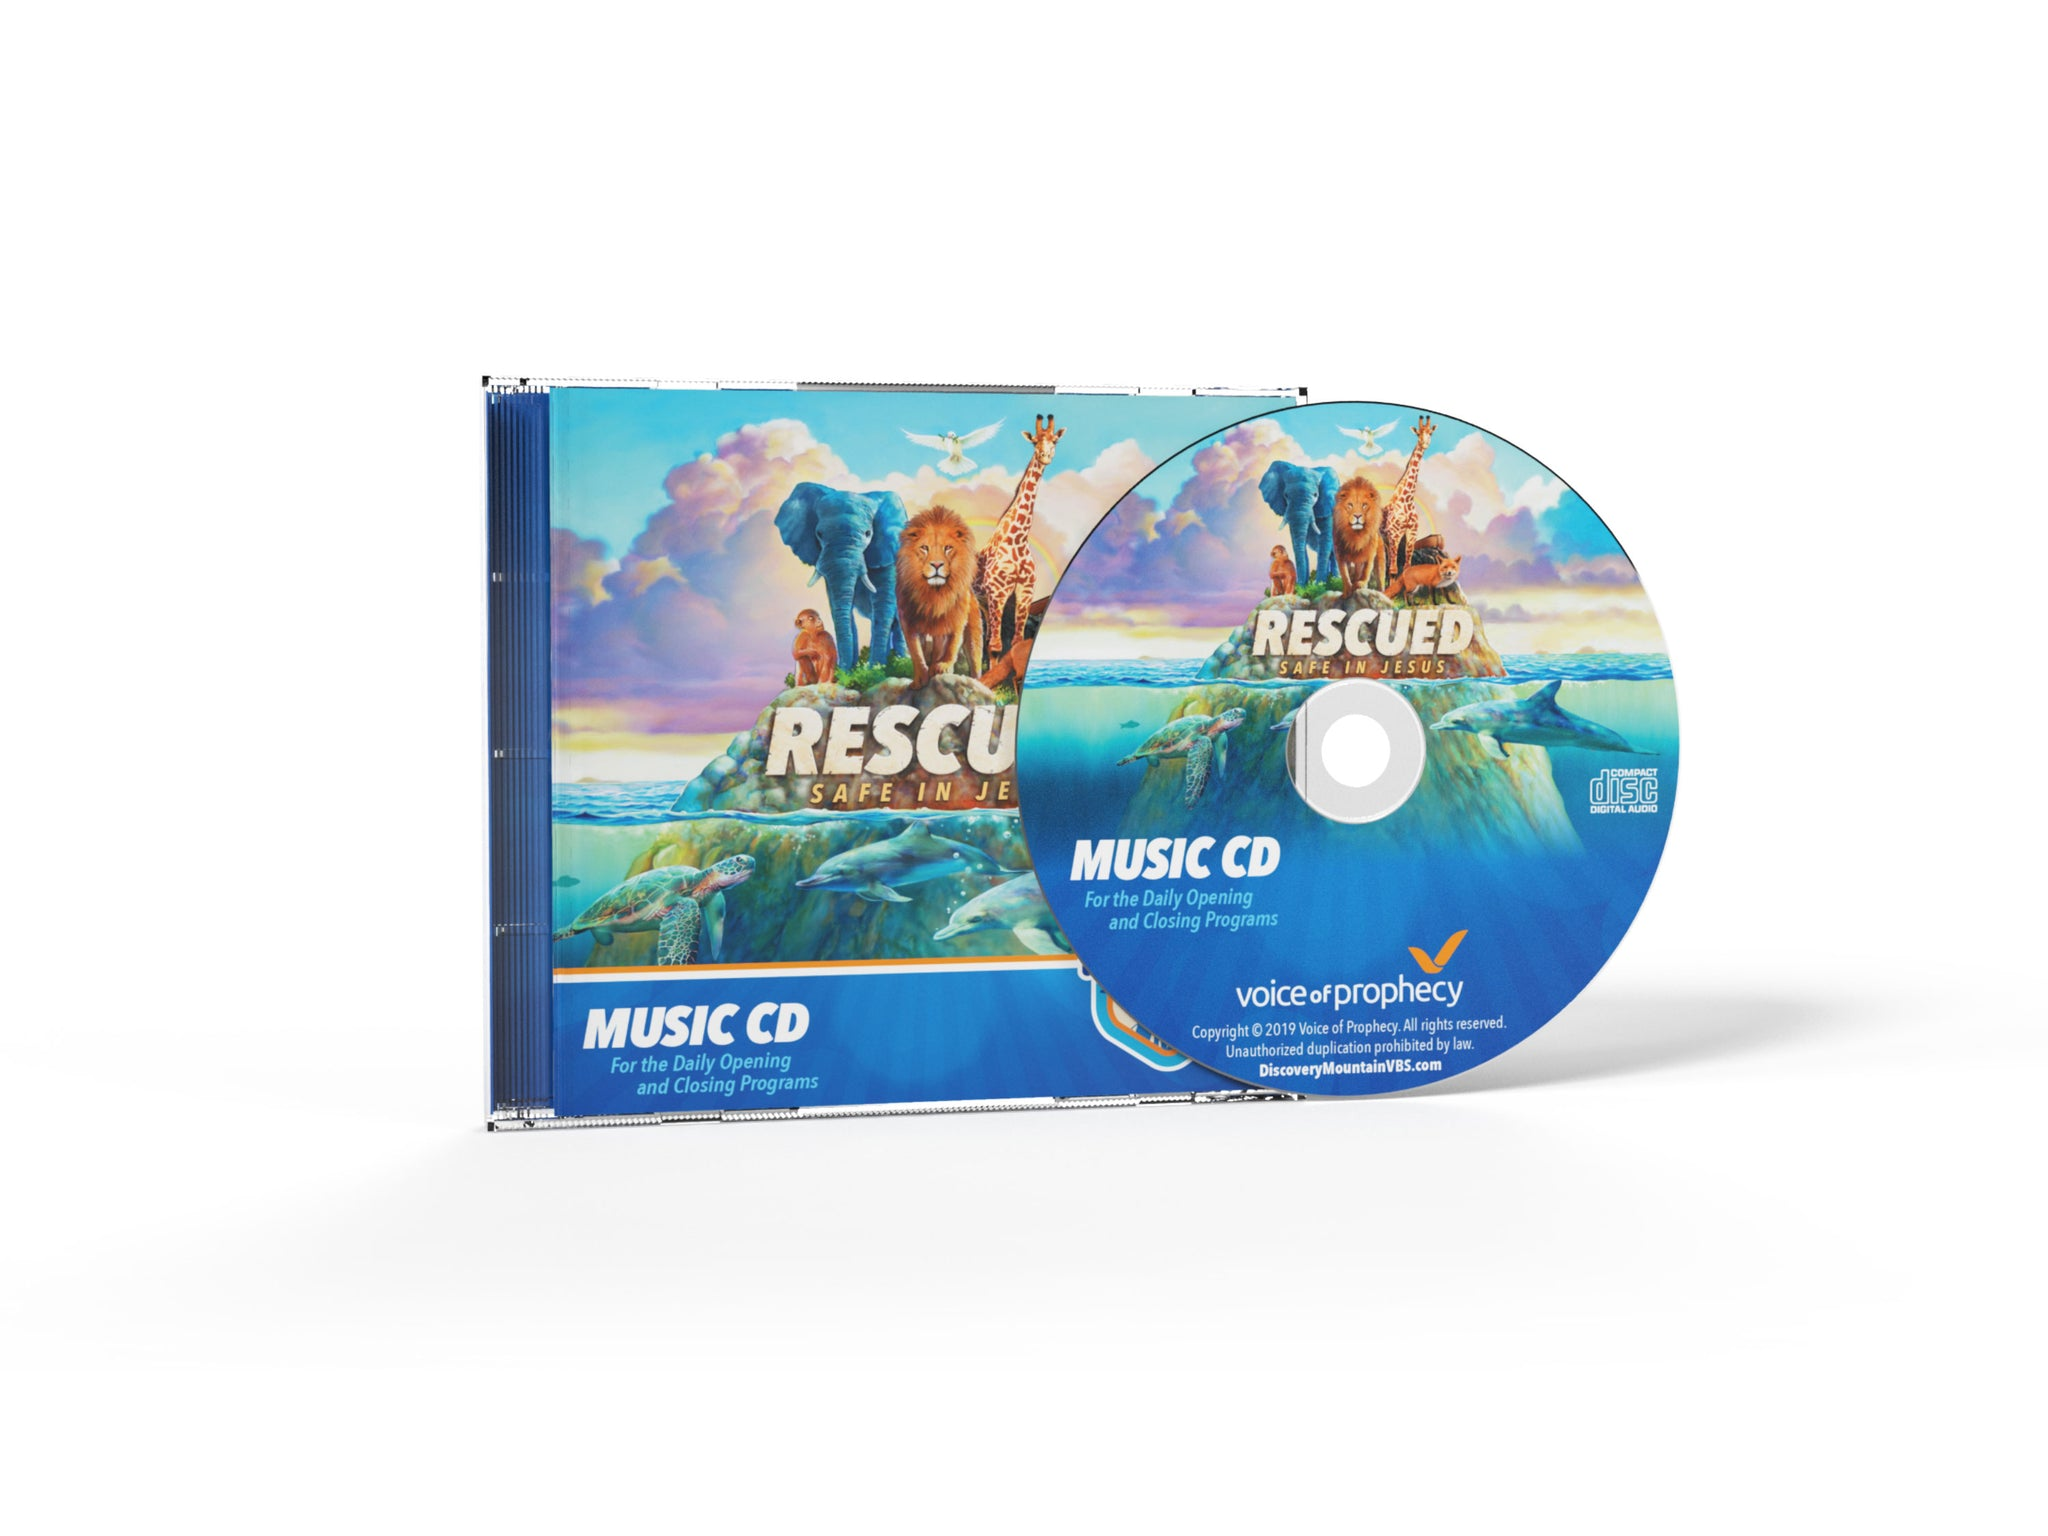 Rescued VBS Music CD